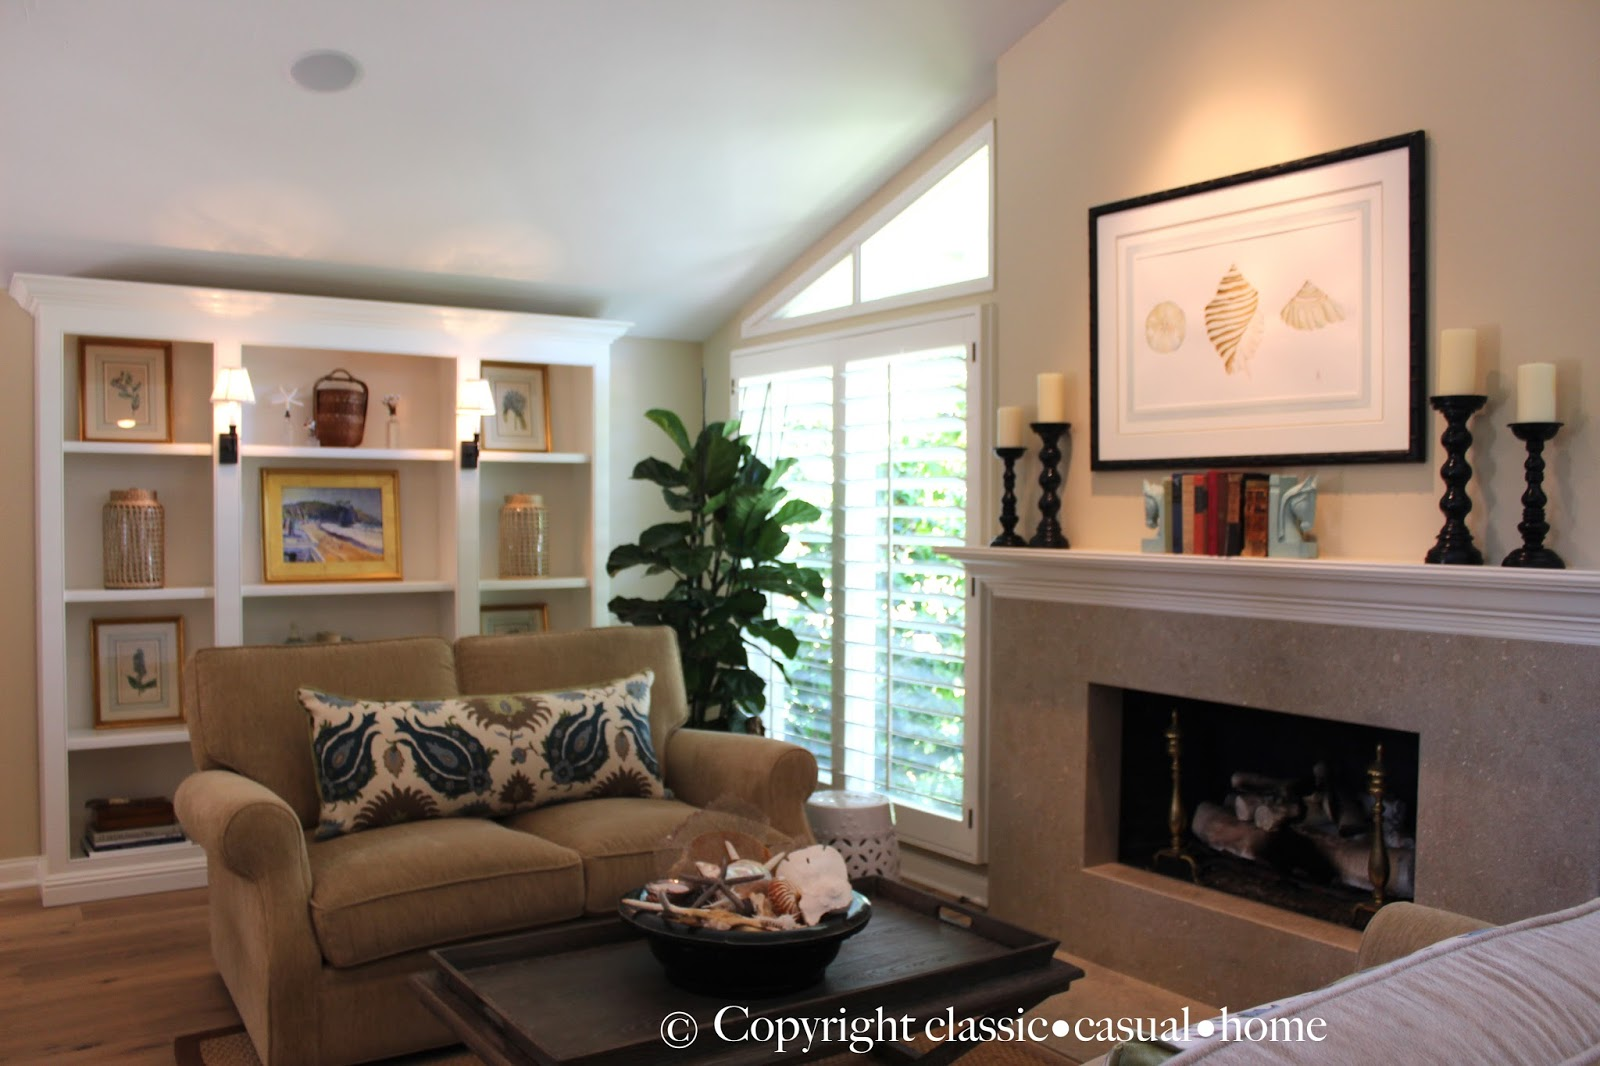 classic  casual  home: Beach Living Room Dcor Before ...